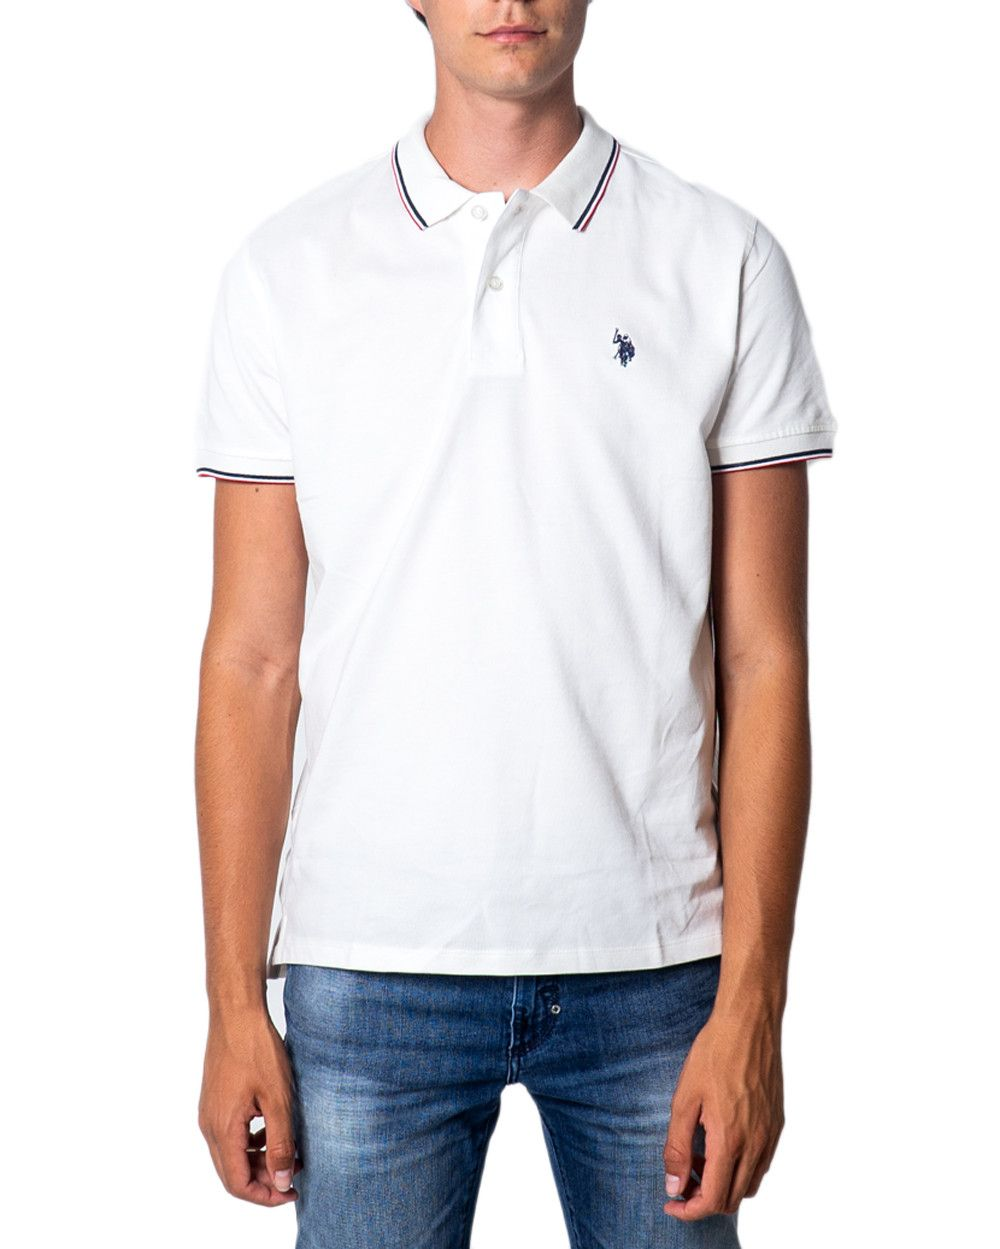 U.S. Polo Assn. Men's Polo In White